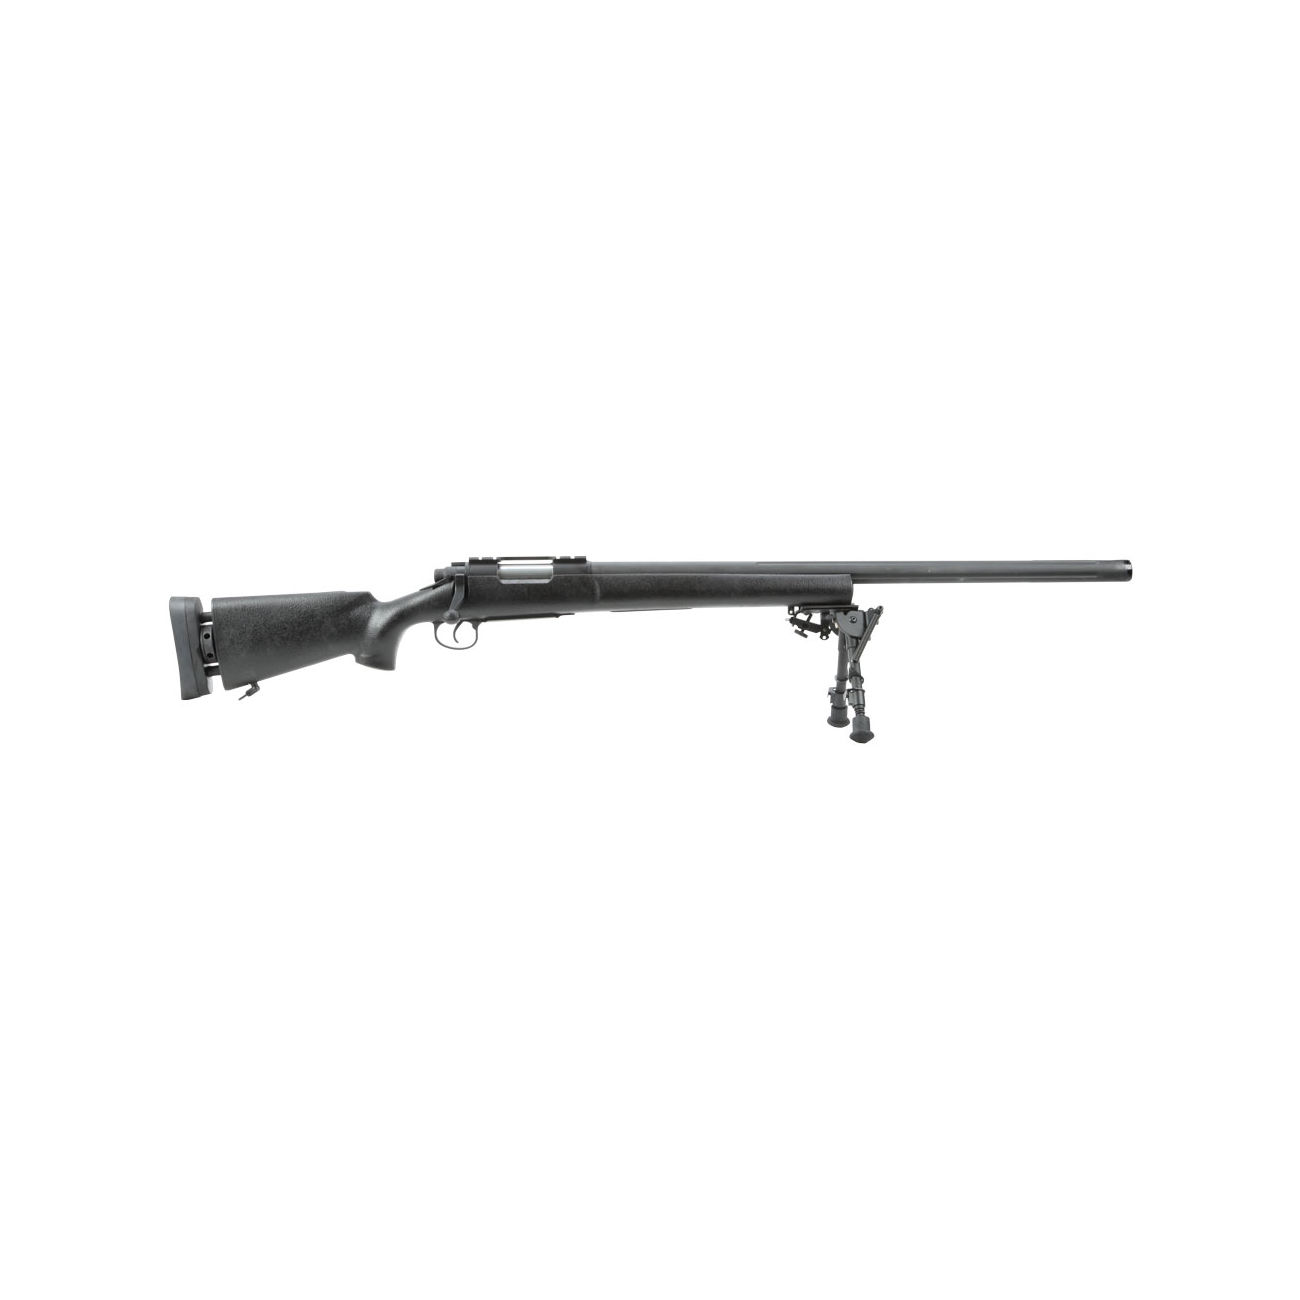 Echo1 M28 Bolt Action Snipergewehr Generation 2 Springer 6mm BB schwarz 1